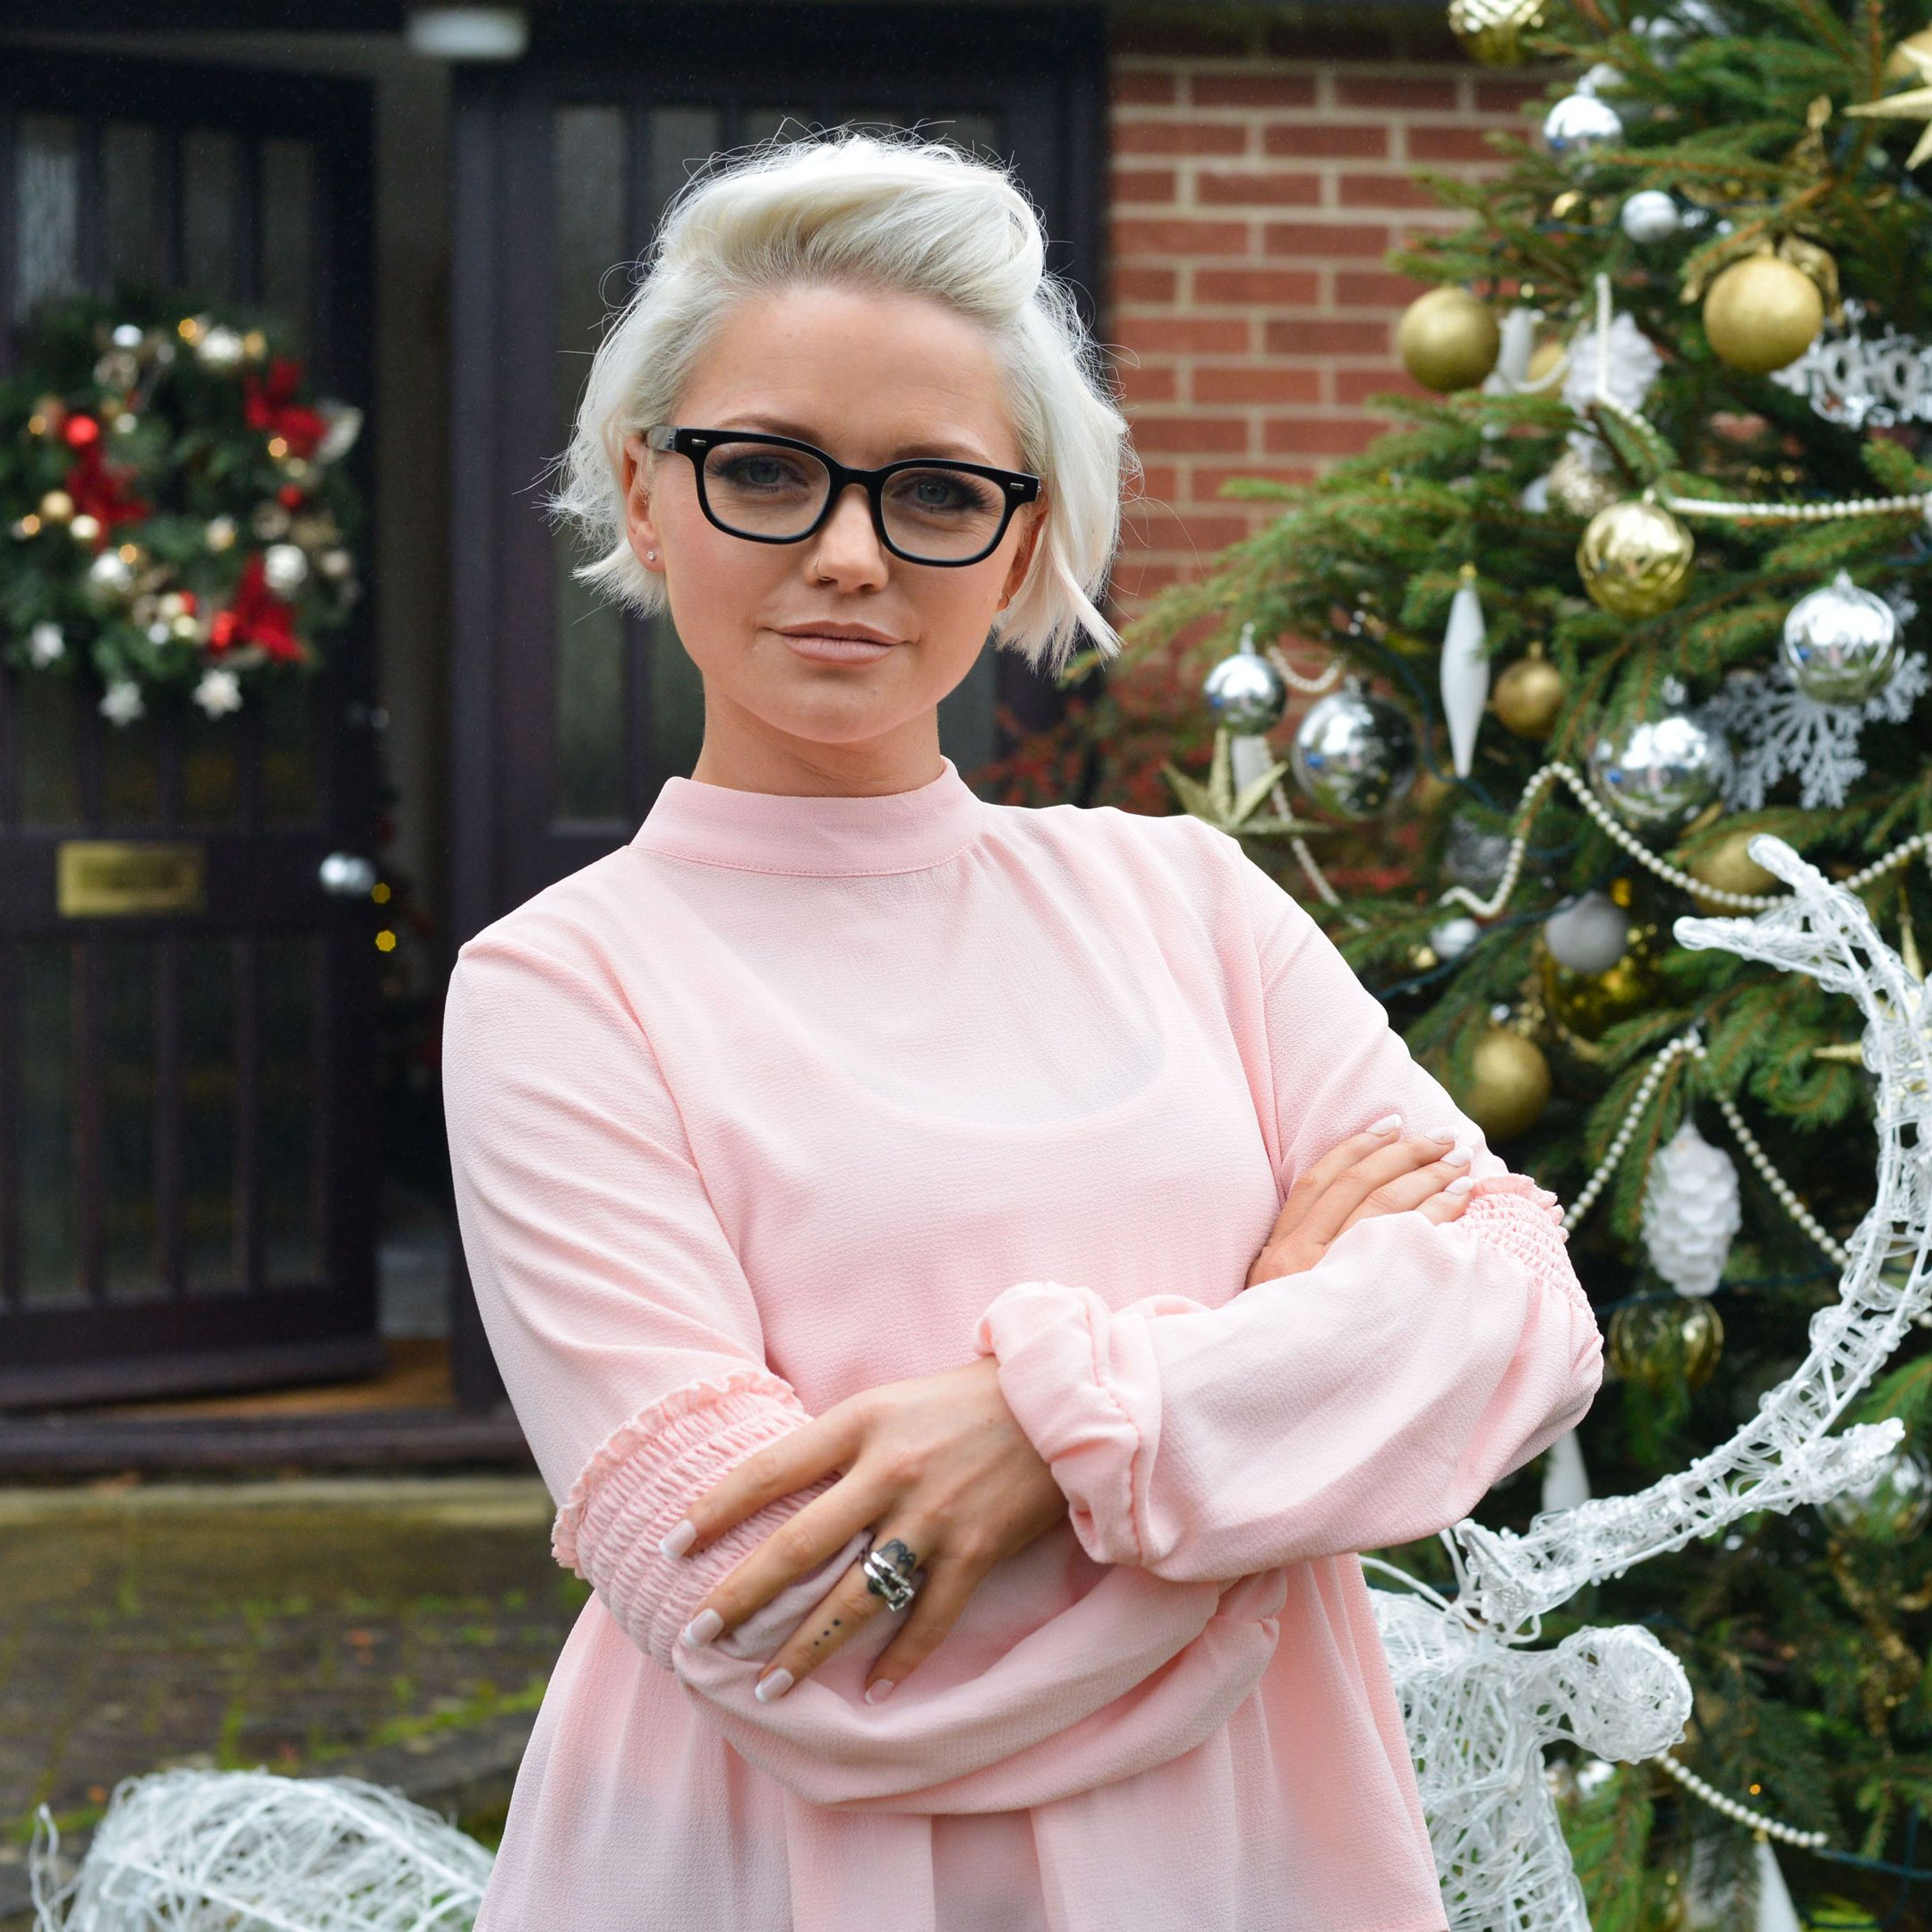 EastEnders and S Club 7 star Hannah Spearritt shares first picture of daughter Téa